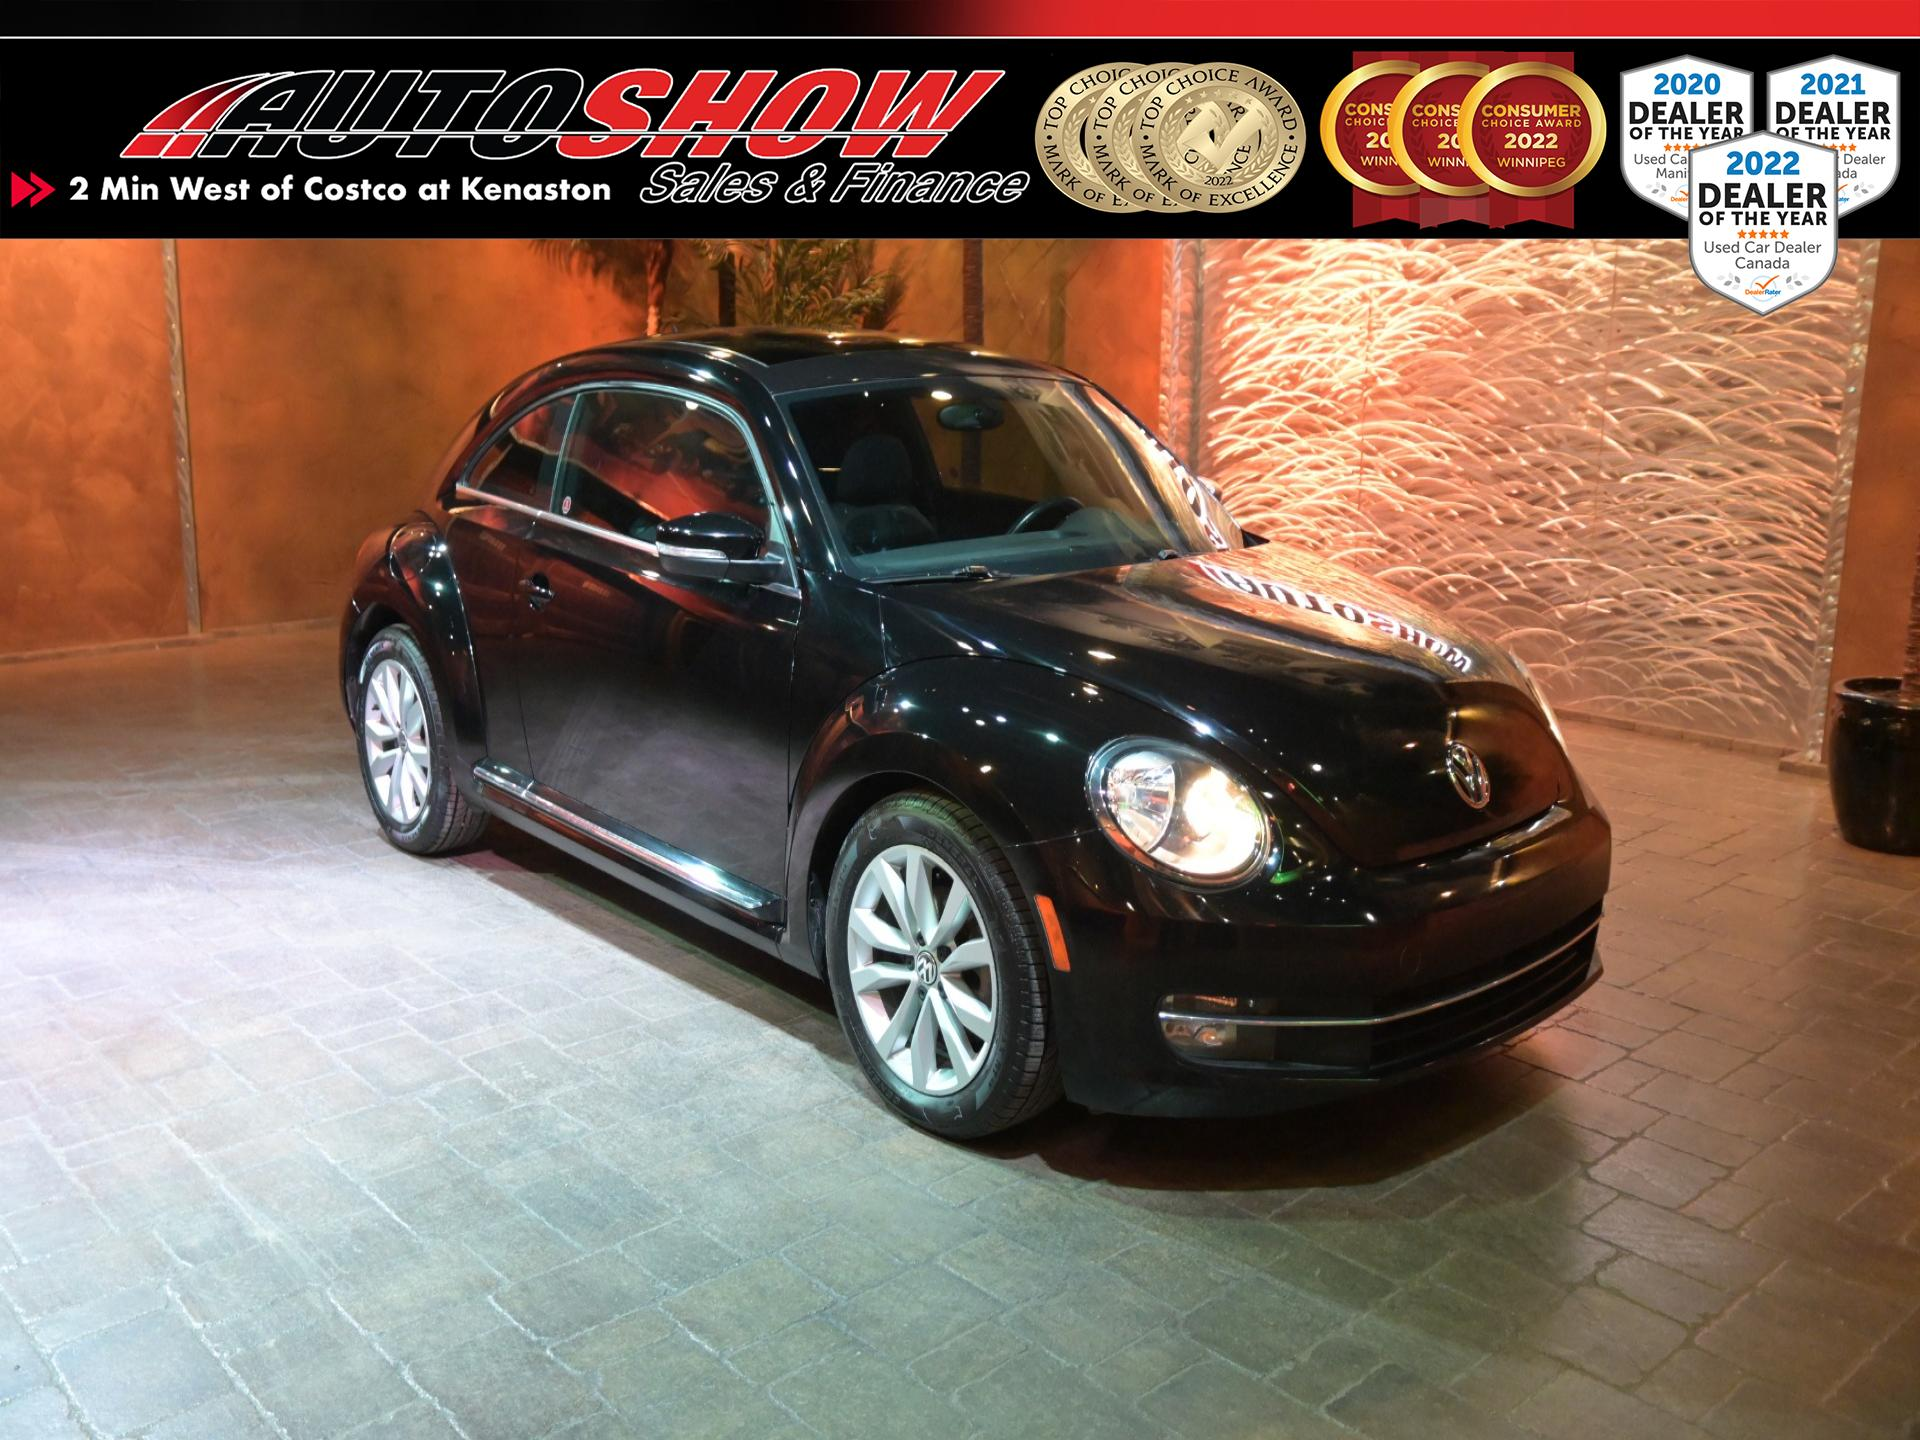 used 2013 Volkswagen Beetle Coupe car, priced at $15,600